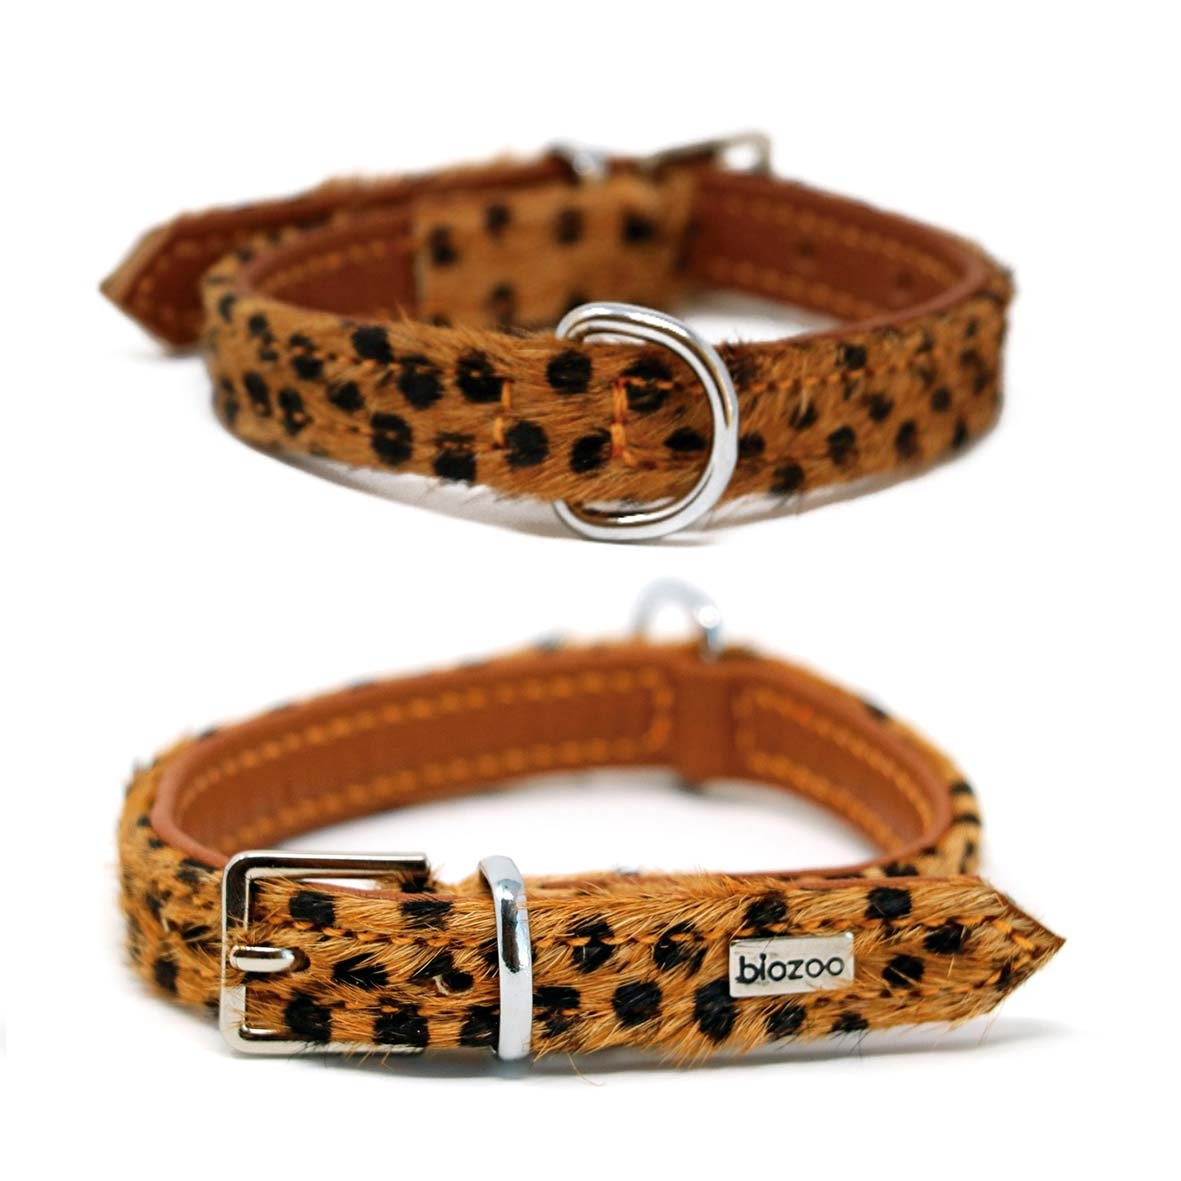 Animal Print Leather Collar-Collar-Biozoo-25 x 1,5-Papua-Biozoopets